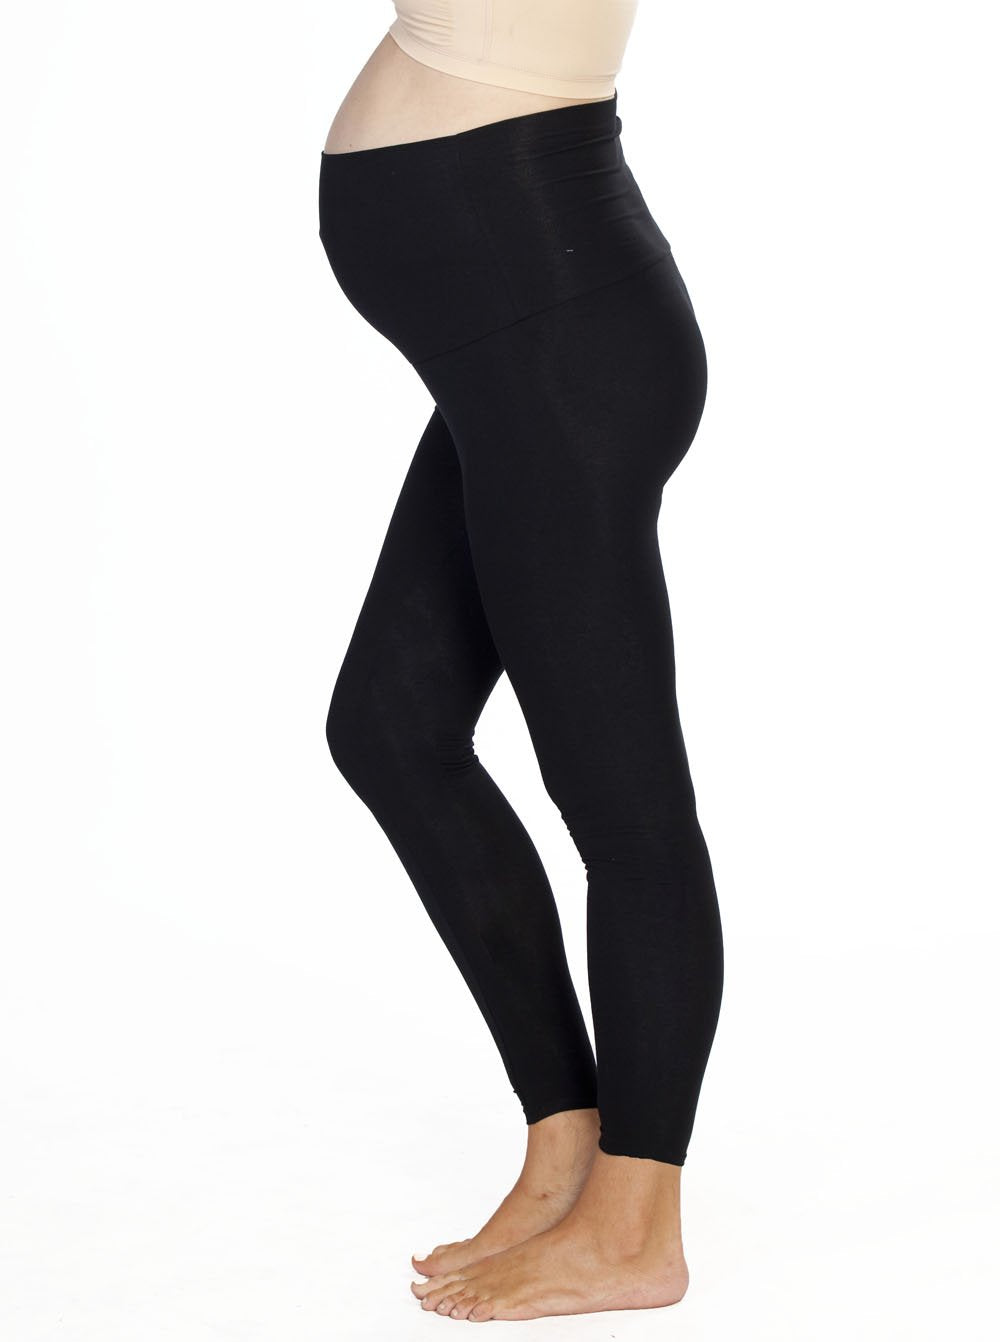 Angel Maternity Basic Cotton Legging - Black